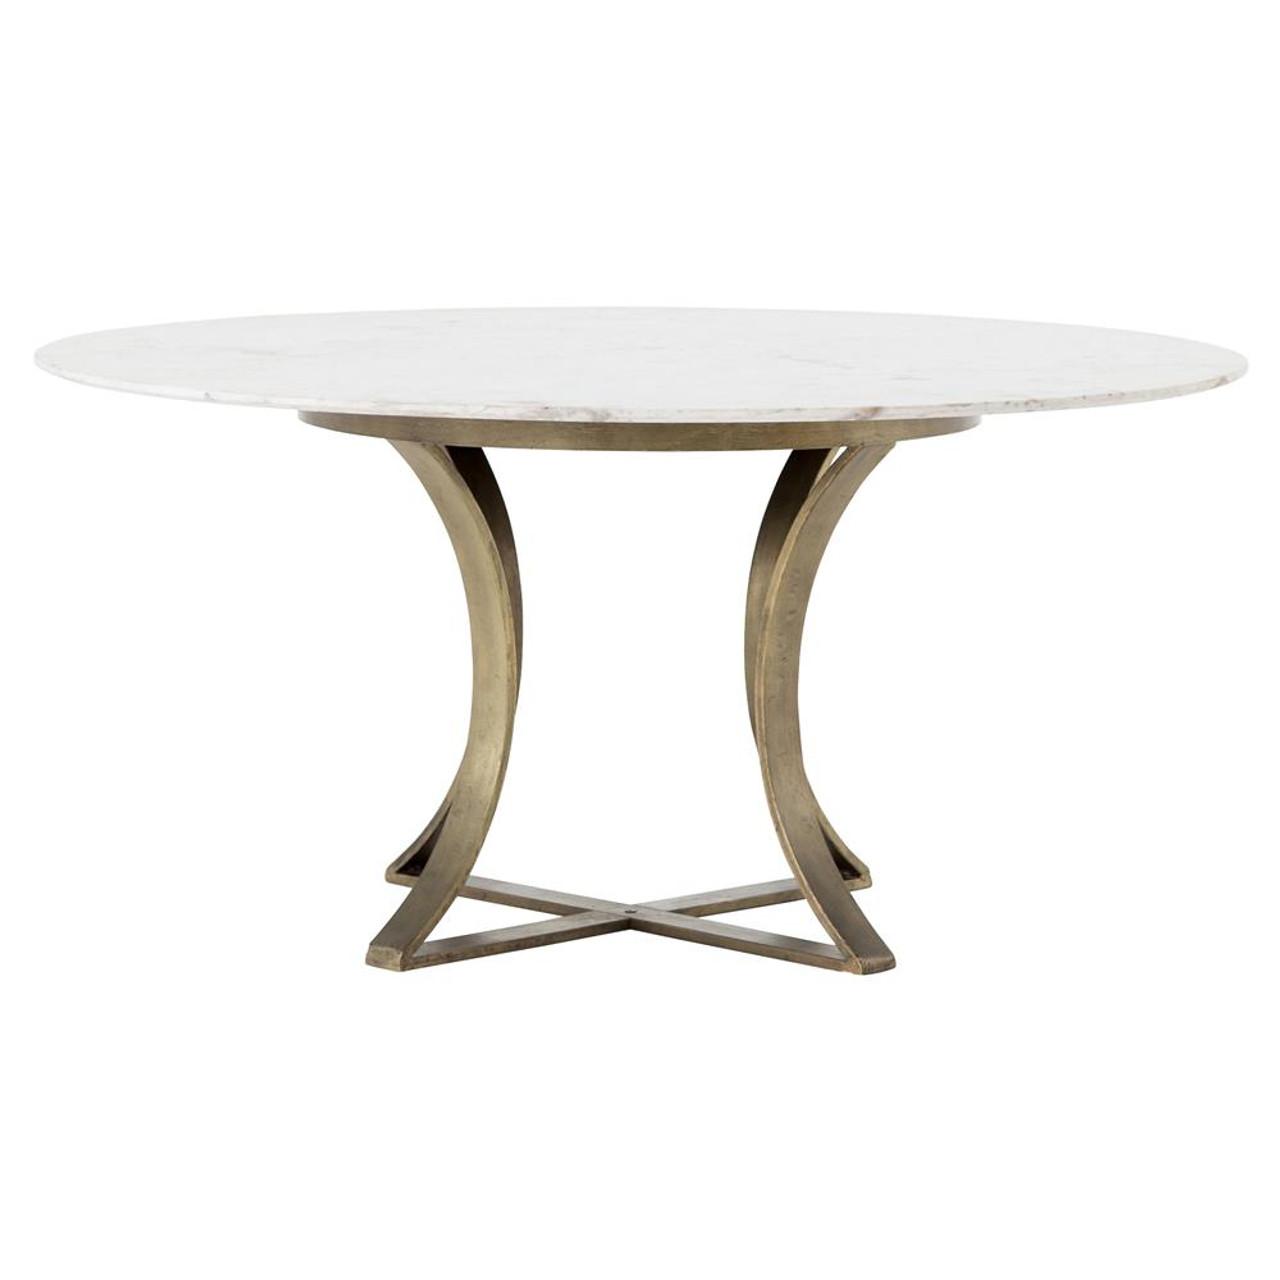 white round dining table Gage White Marble & Antique Brass Leg Round Dining Table 60